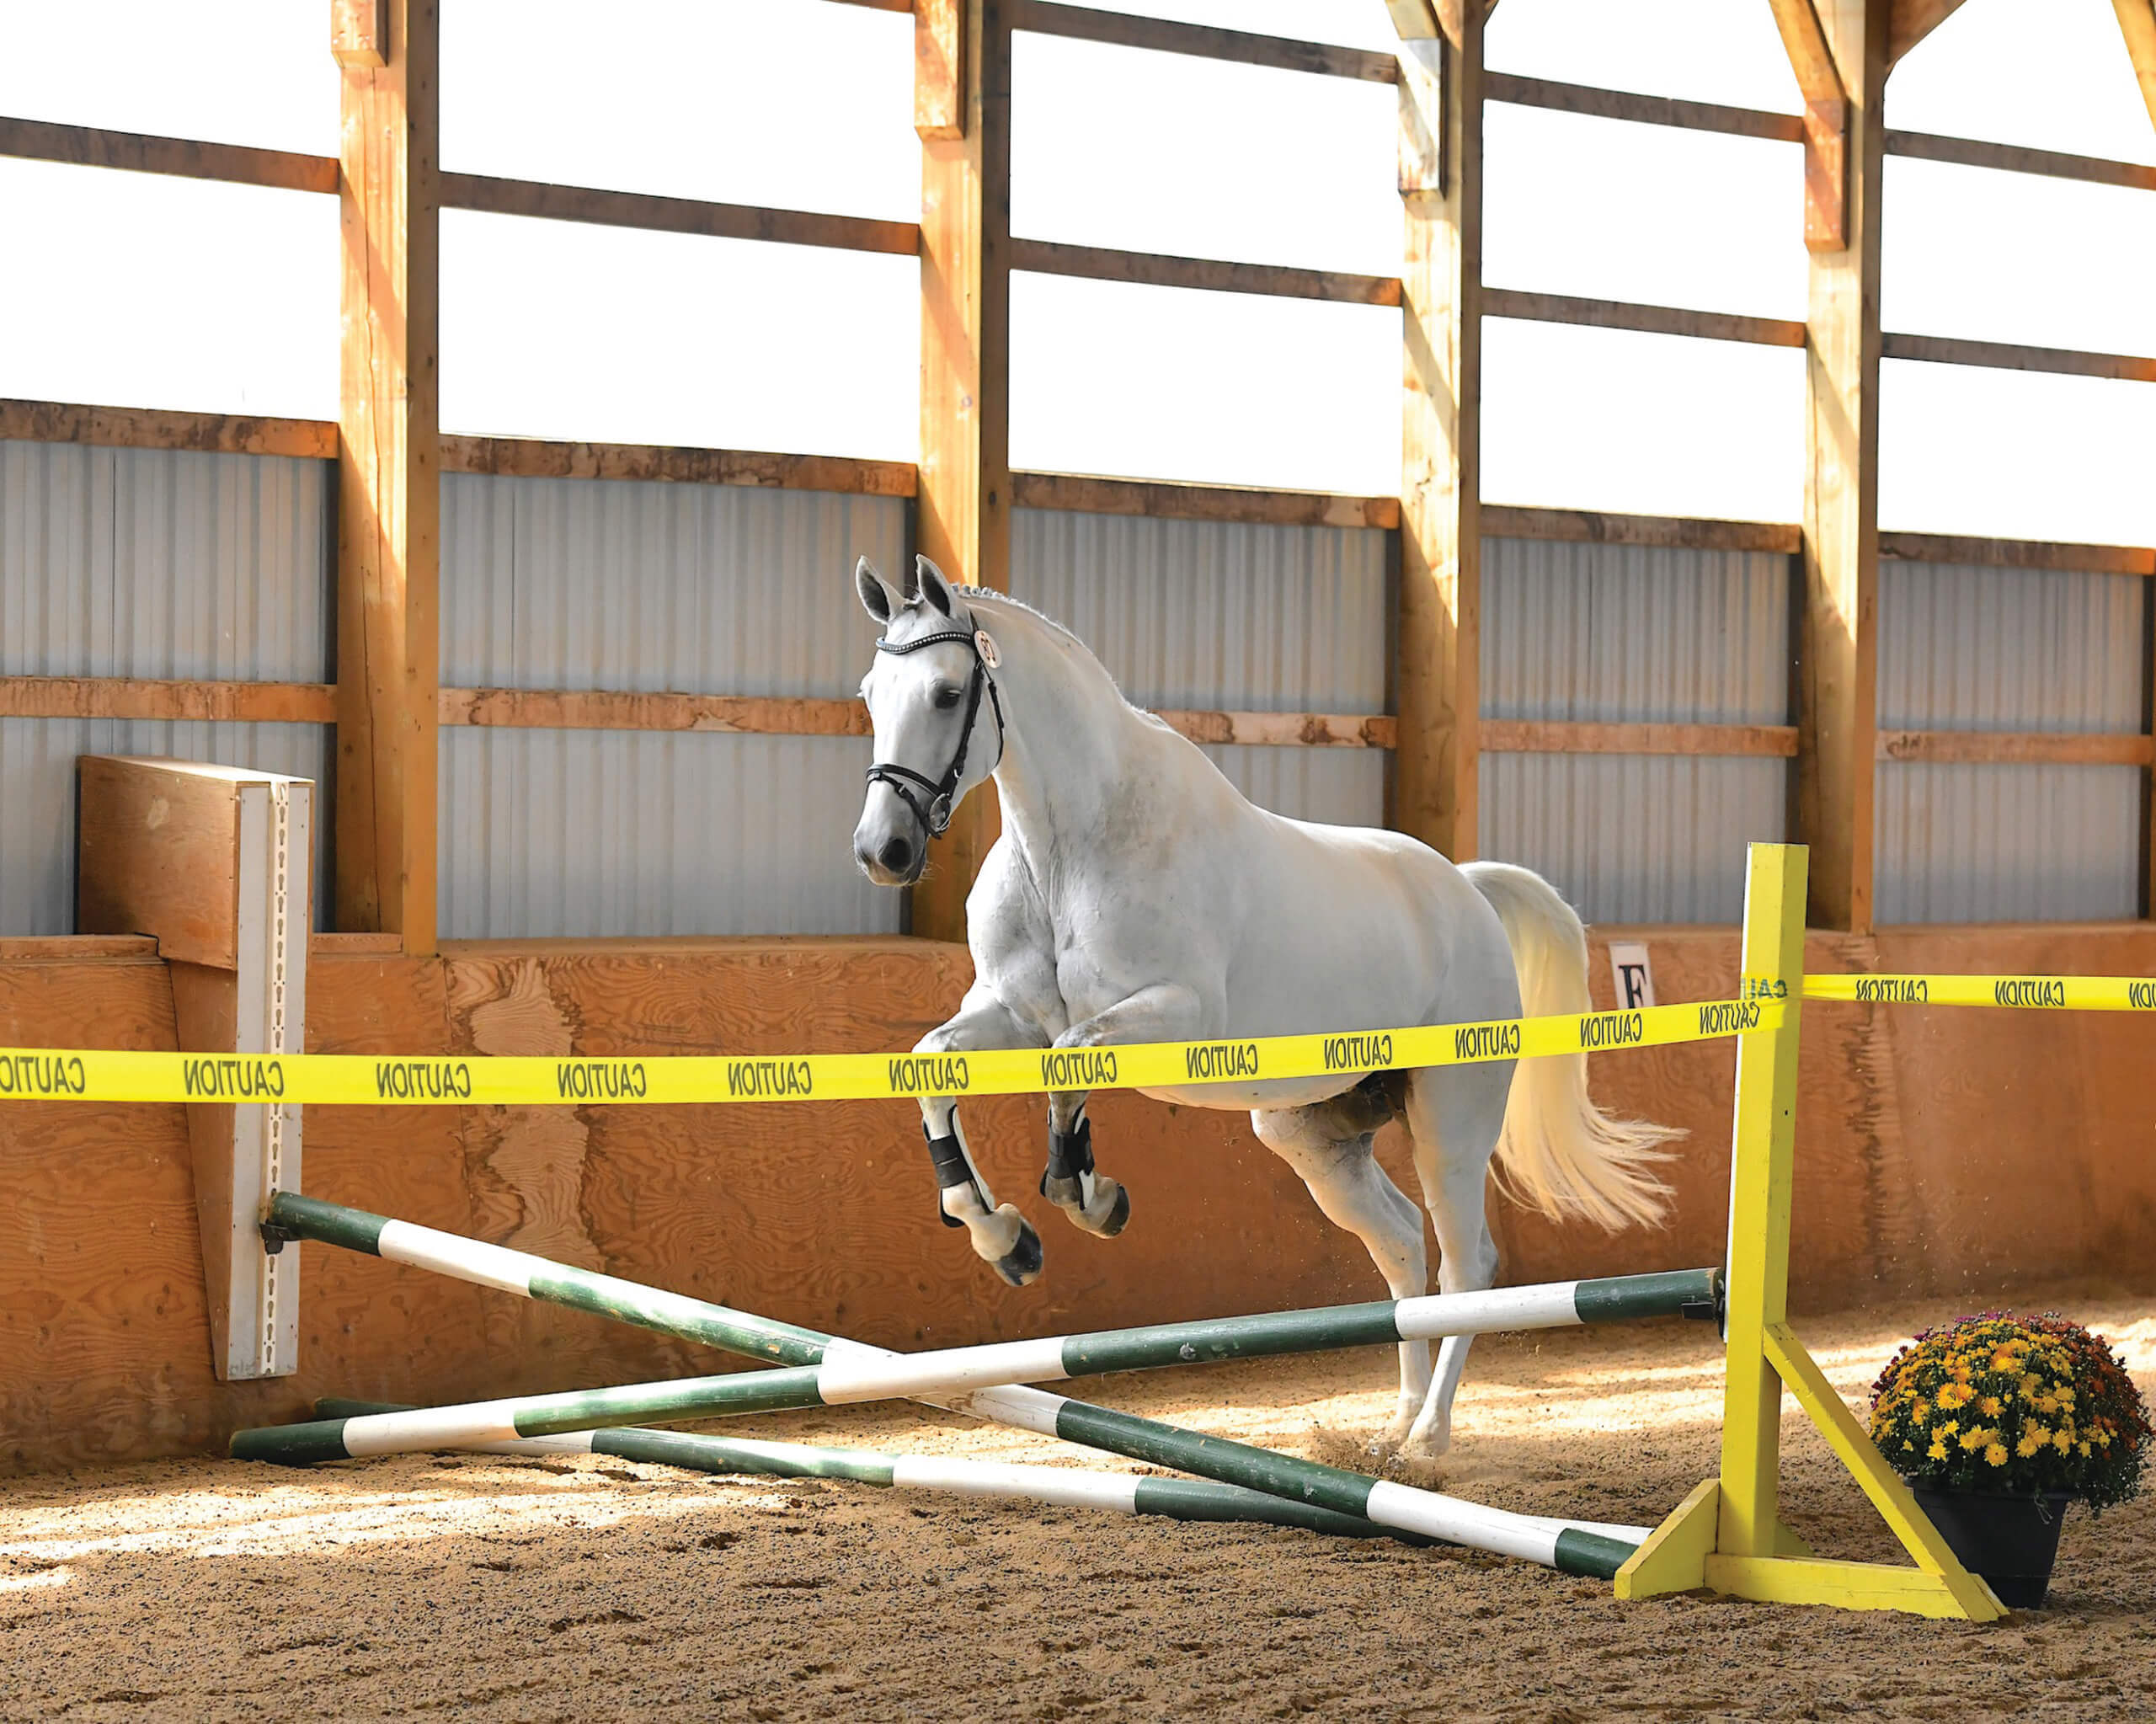 Free jumping allows the horse to use its body without rider influence or interference and can be a great confidence-builder. You may even find your horse heading for the chute without being asked!